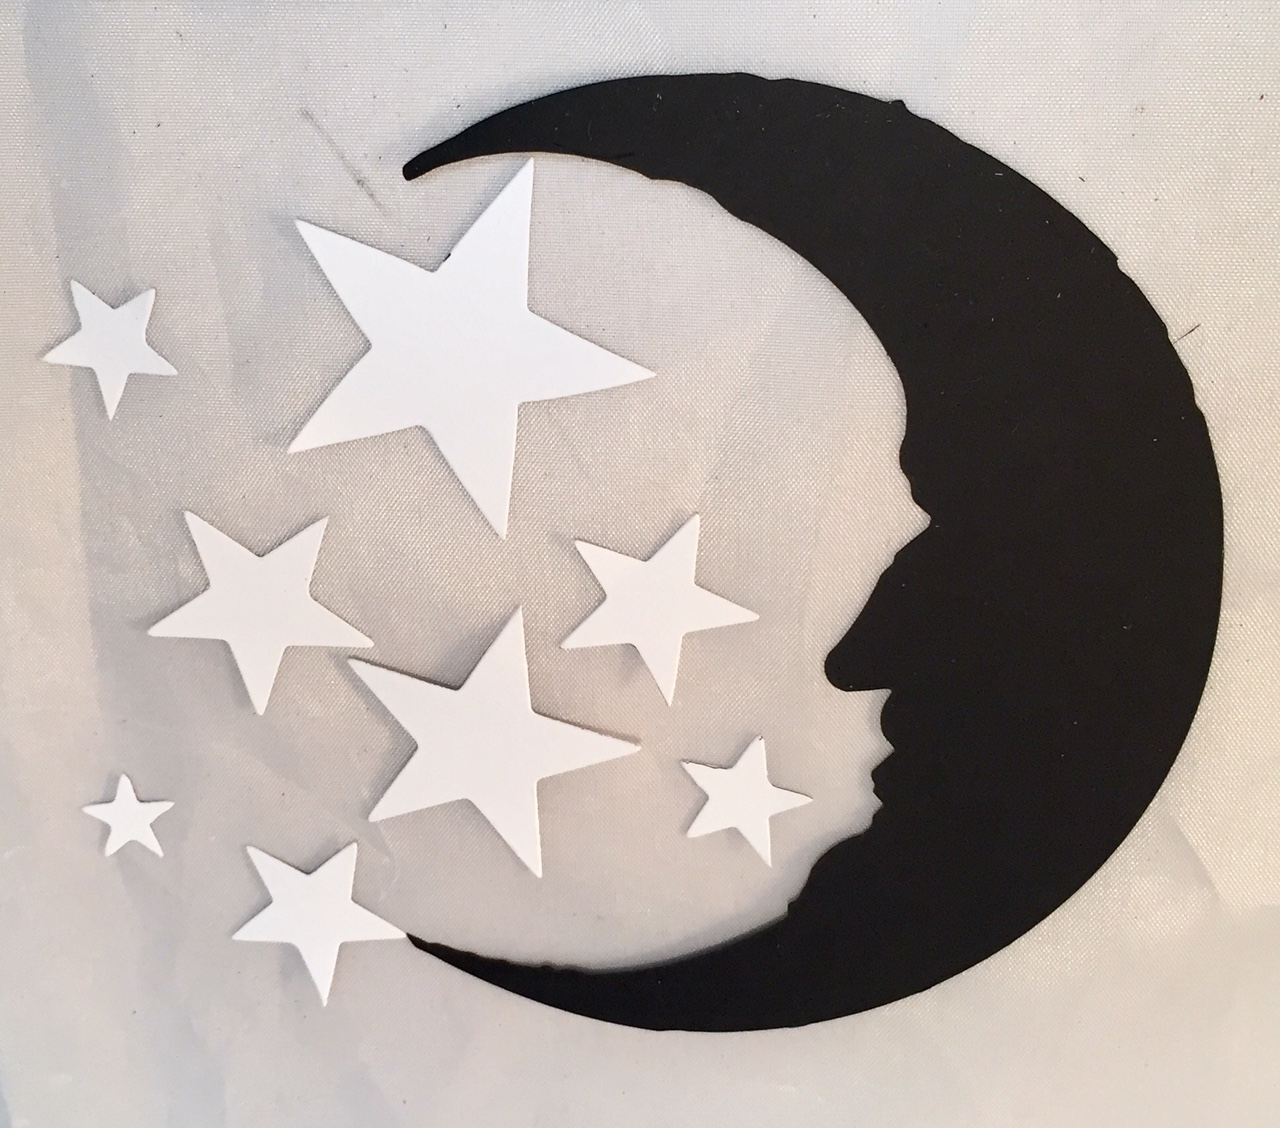 Sizzix Bigz Die by Tim Holtz Crescent Moon and Stars 5.5 by 6-Inch